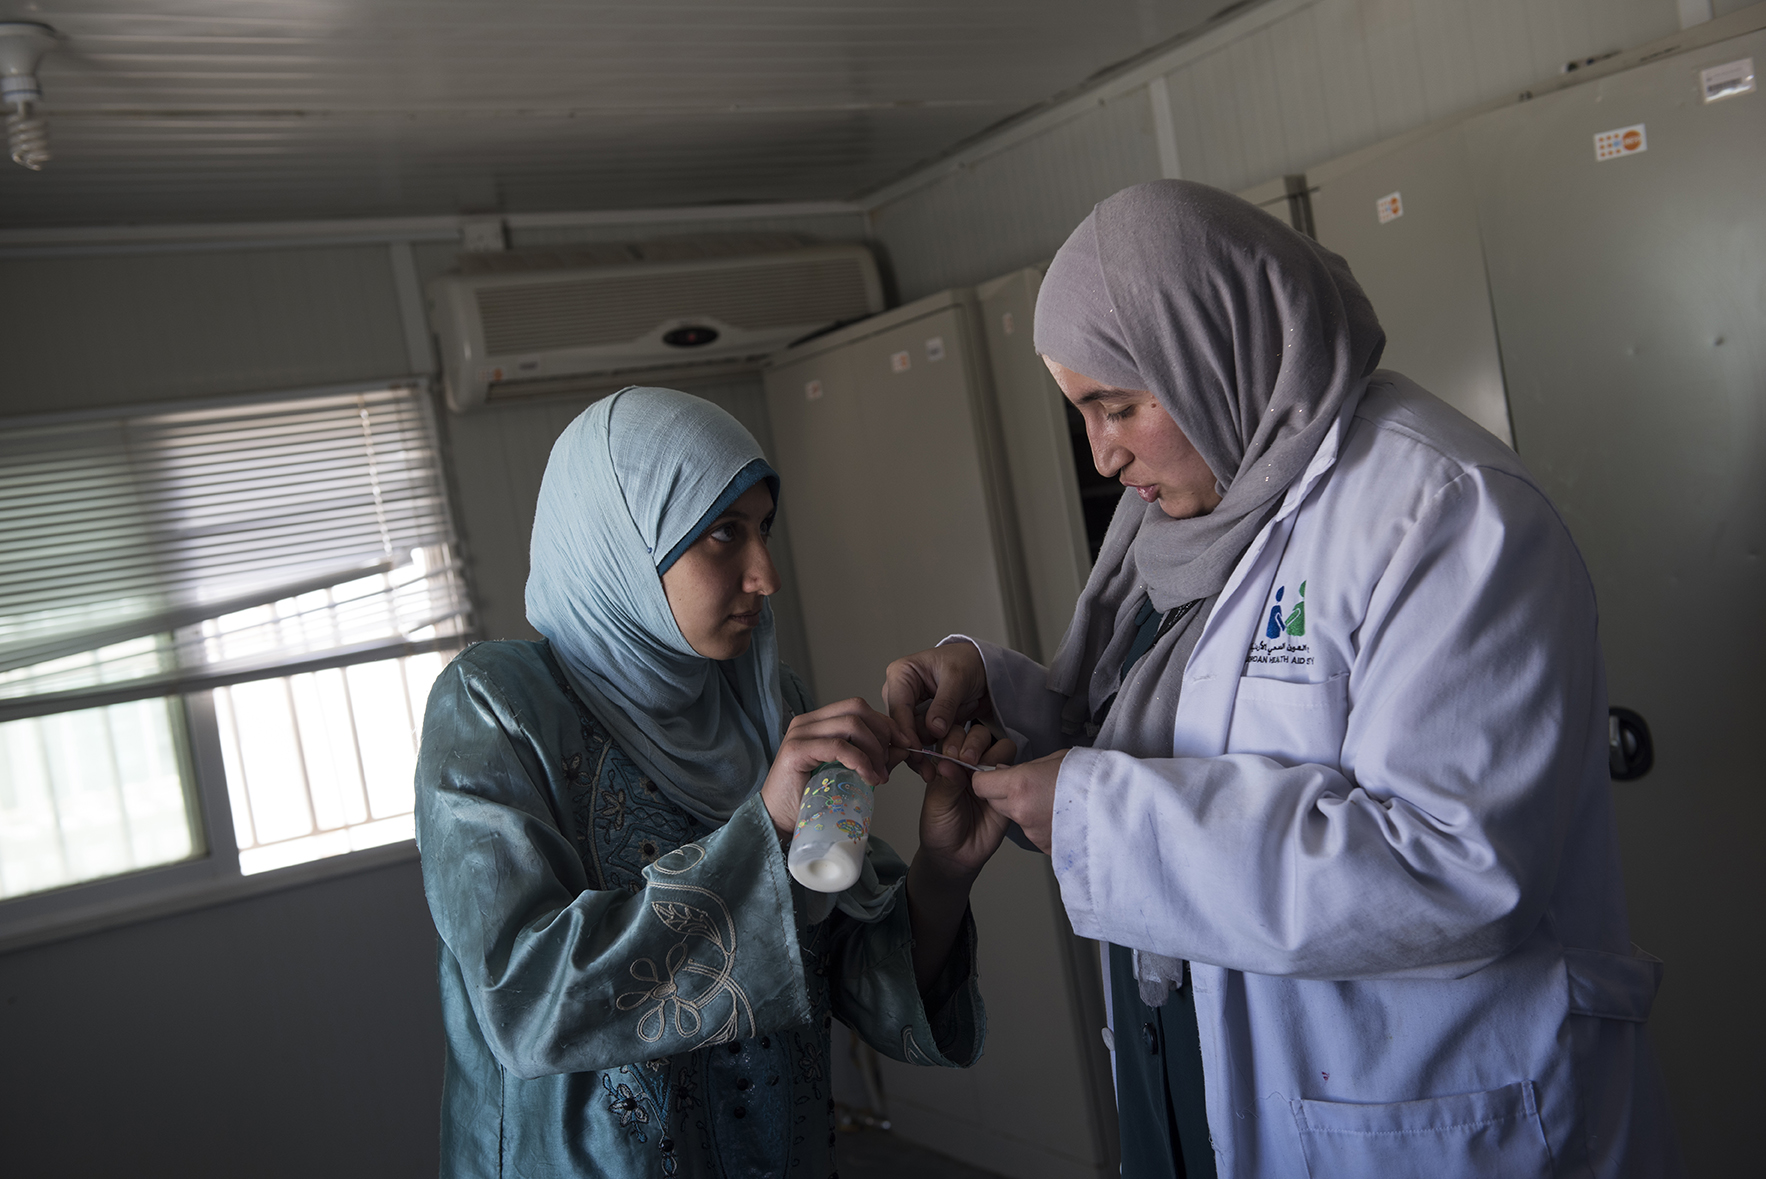 Hana Mufleh Mohammed, 16, a Syrian refugee from Daraa, speaks with midwife Nibal Shiab, 26, as she prepares to do a pregnancy test at a clinic run by JHAS and the United Nations Population Fund at the Zaatari refugee camp in Jordan, August 27, 2014.  Hana had complications with her pregnancy: she had pre-eclampsia and seizures, and spent over two weeks in the hospital unconscious after delivering. She now suffers seizures every few weeks, and is hoping to get a referral for a neurologist to diagnose the root of her seizures.  While marriage under the age of eighteen was a common Syrian tradition before the start of the civil war, more and more Syrian girls are marrying at a younger age because of the insecurity of the war,  because many families feel the girls in their family may be sexually harassed if they are not under the care of a husband, and because of prospect of alleviating the financial burden of one more mouth to feed.